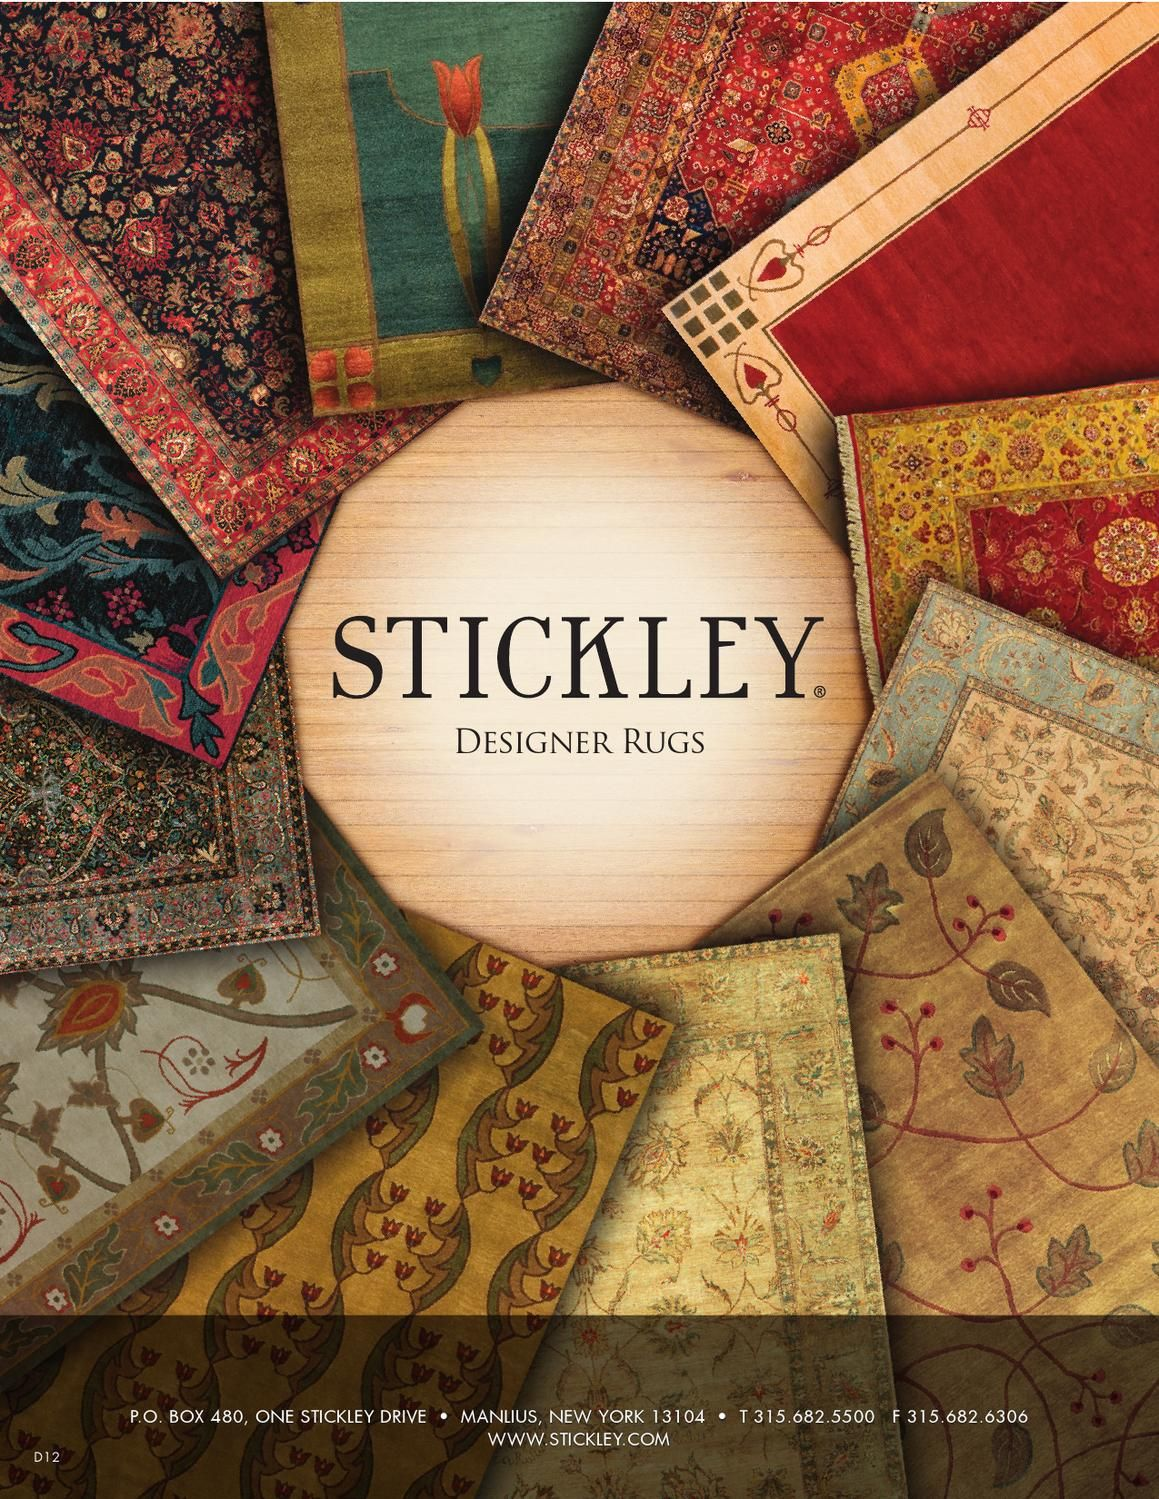 ISSUU   Stickley Designer Rugs Collection By Stickley